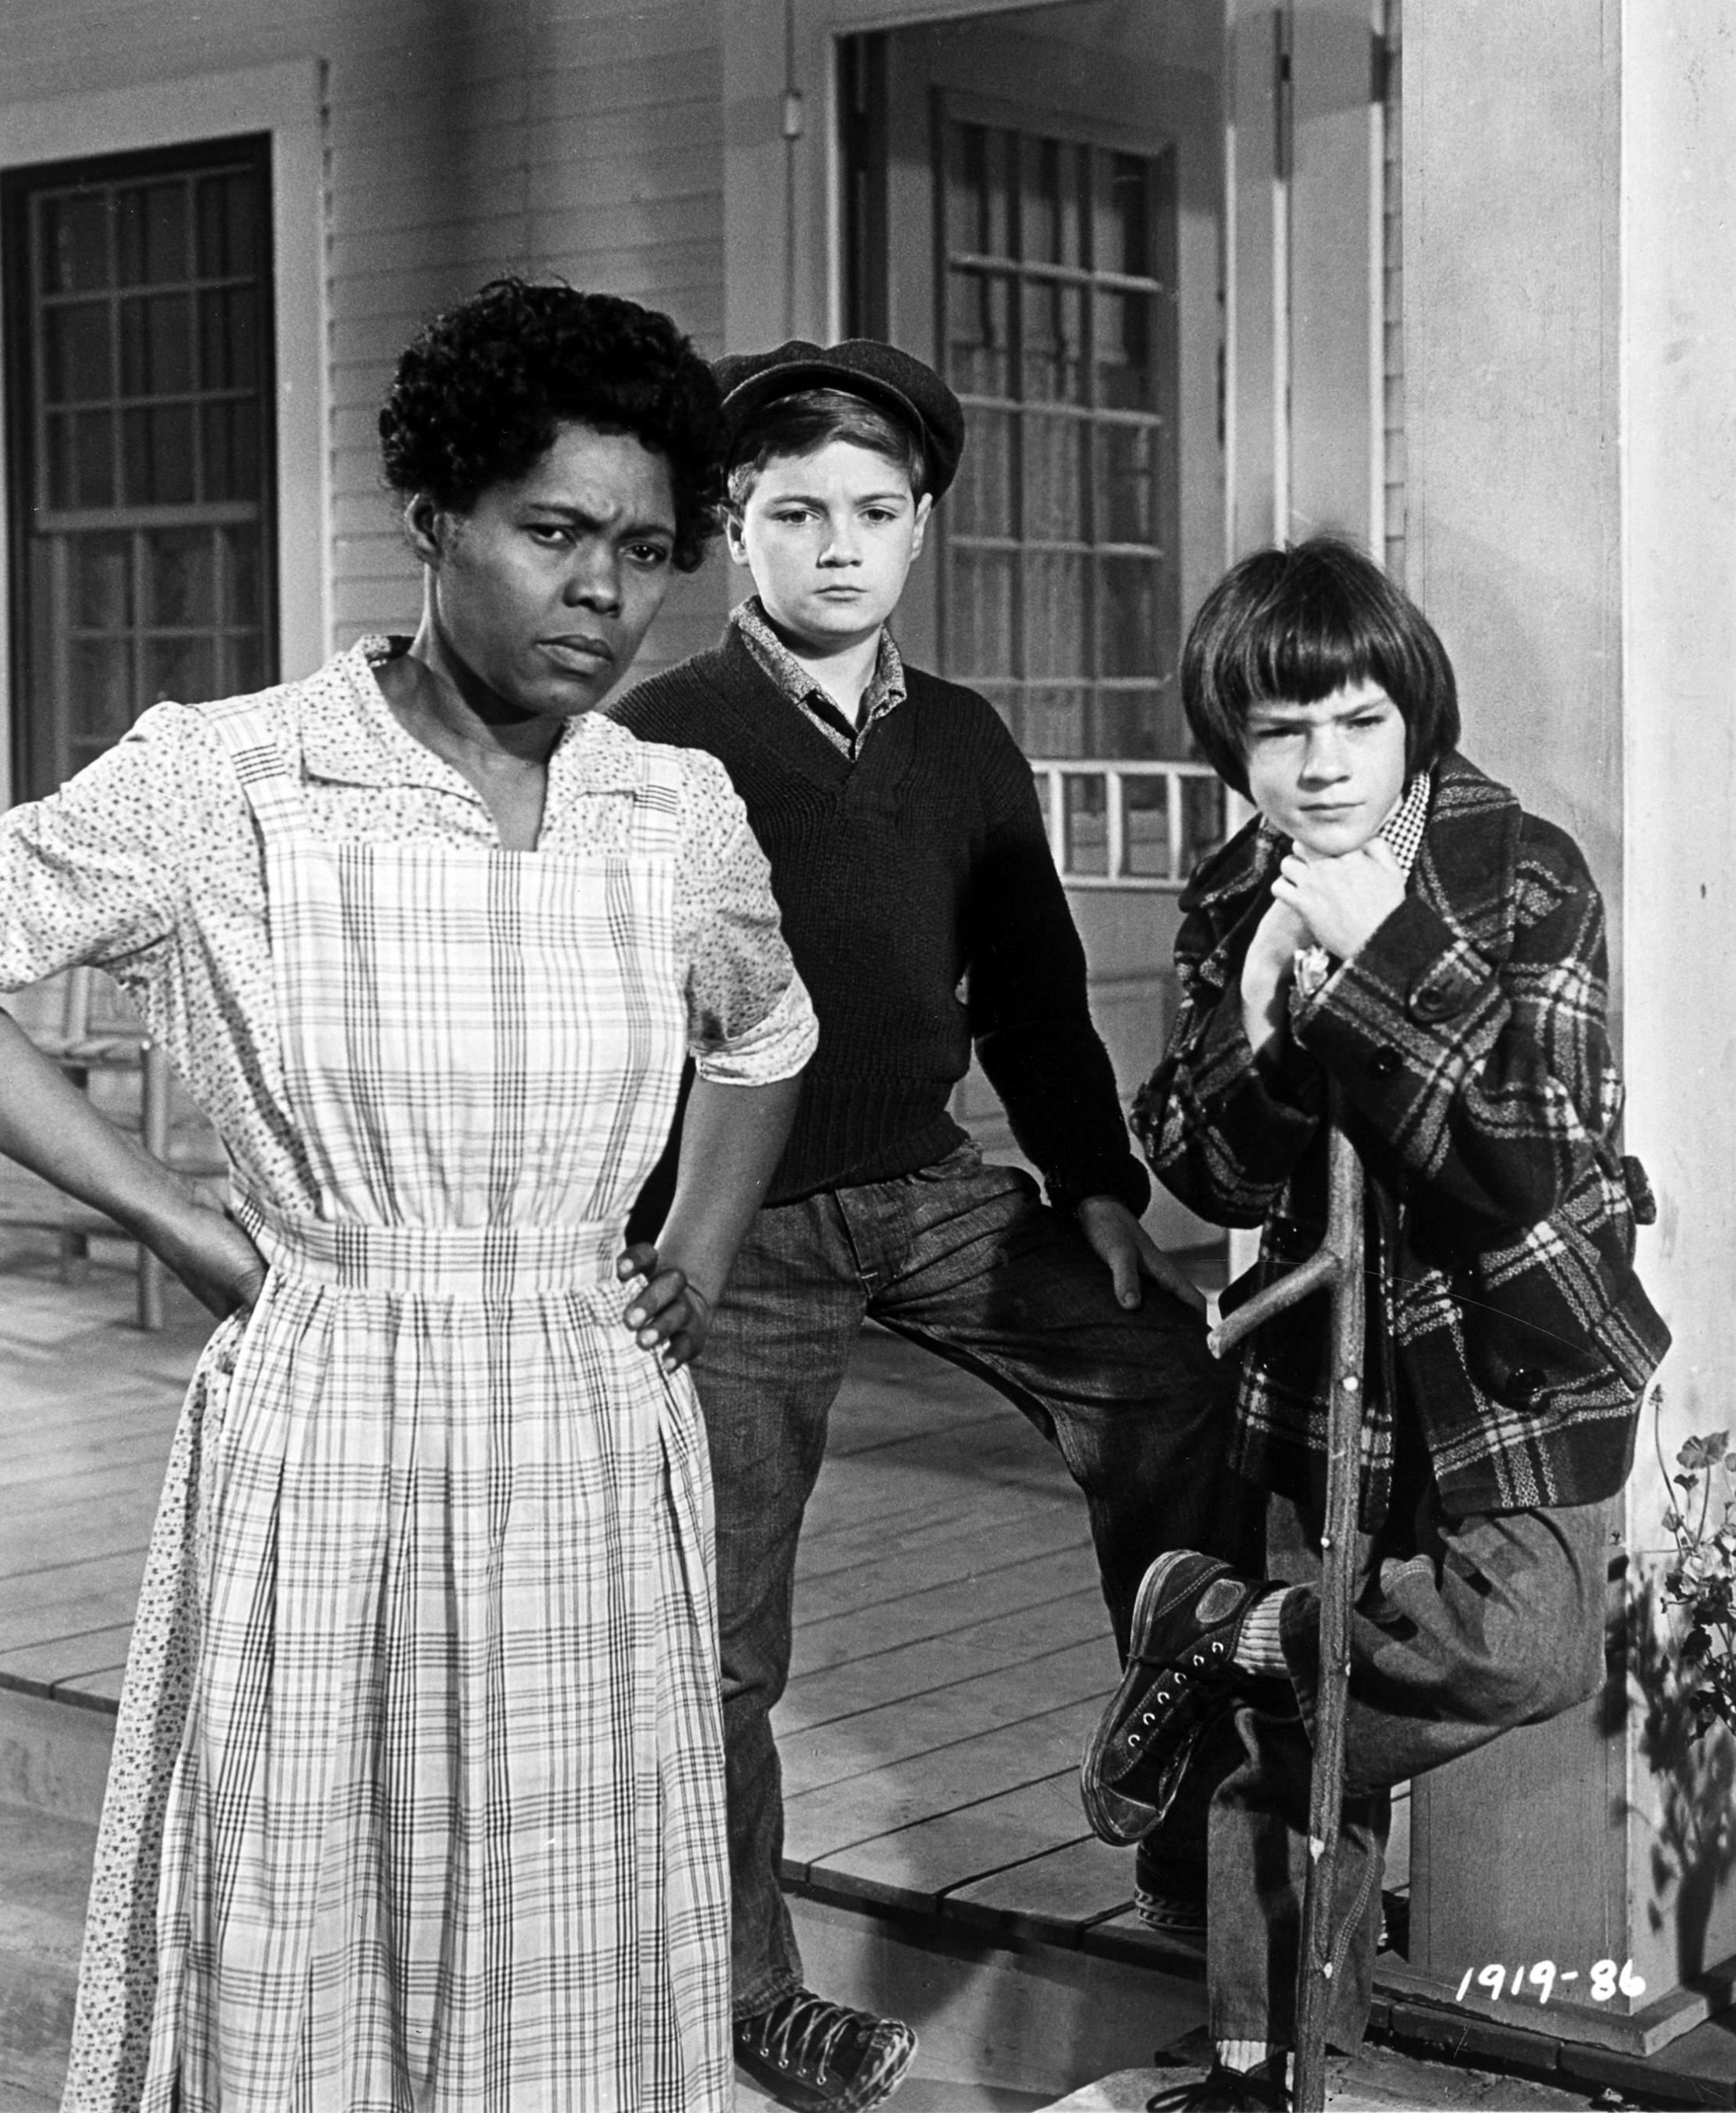 Adventures of a Wild Woman: To Kill a Mockingbird 50th Anniversary Screening